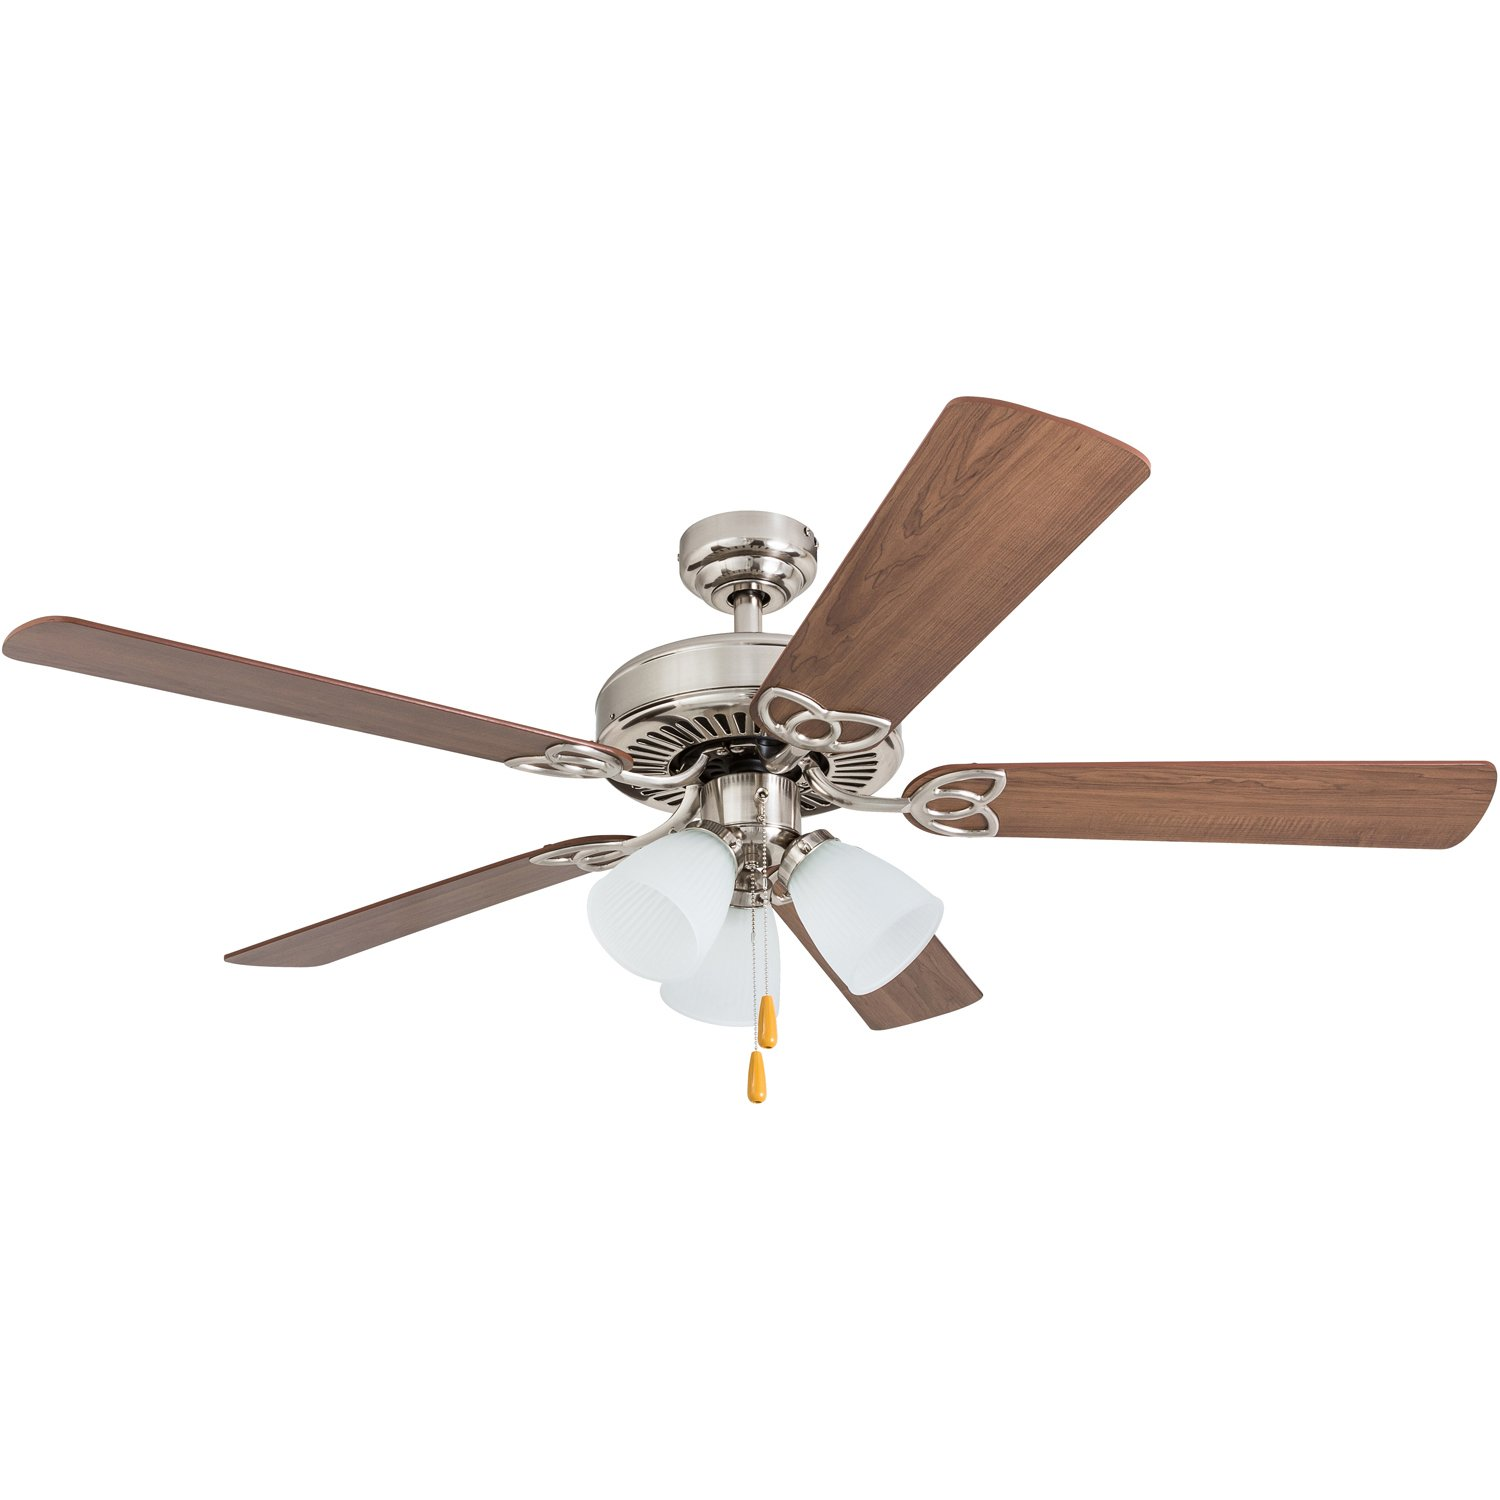 Portage Bay 50256 Stannor 52'' Brushed Nickel Ceiling Fan with 3 Arm Light